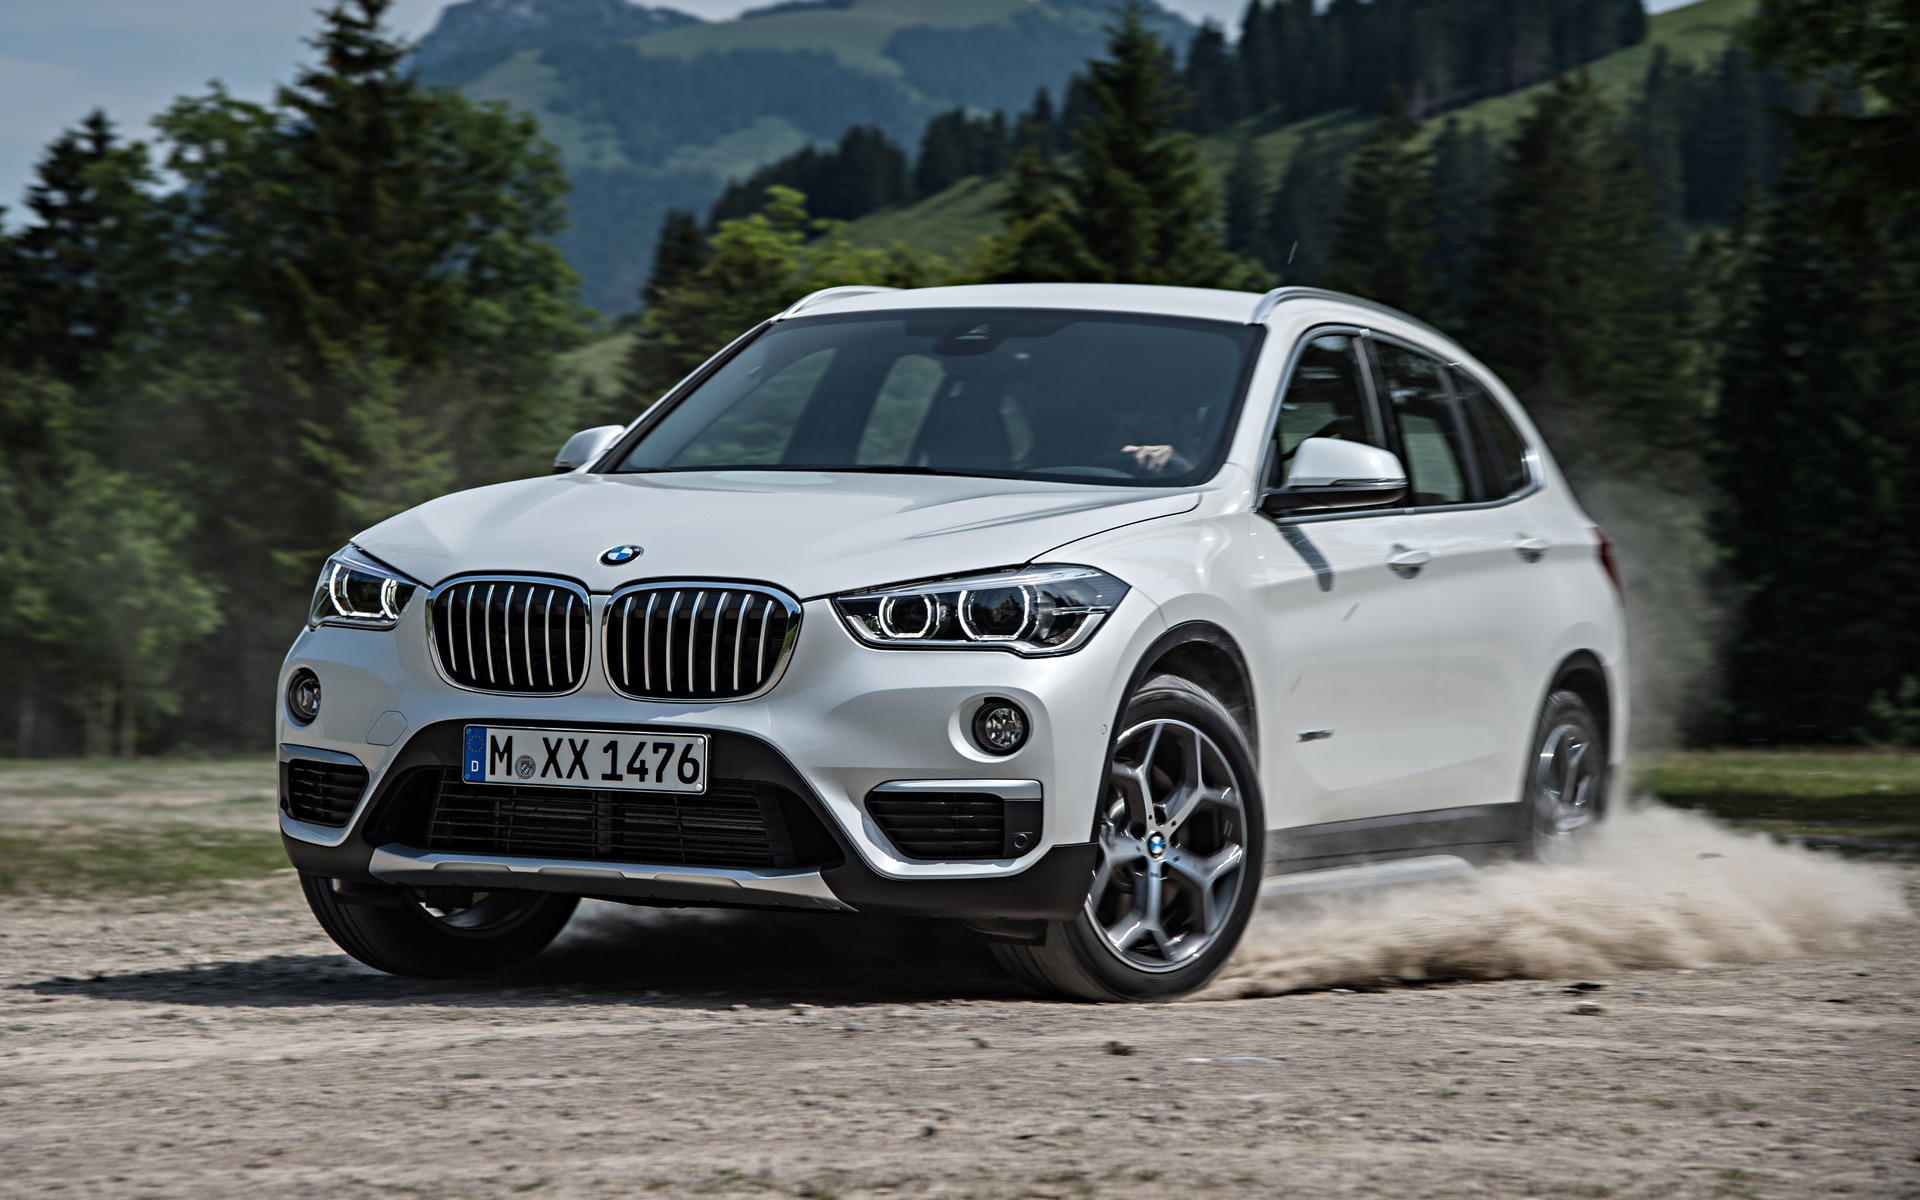 2017 Bmw X1 News Reviews Picture Galleries And Videos The Car Guide